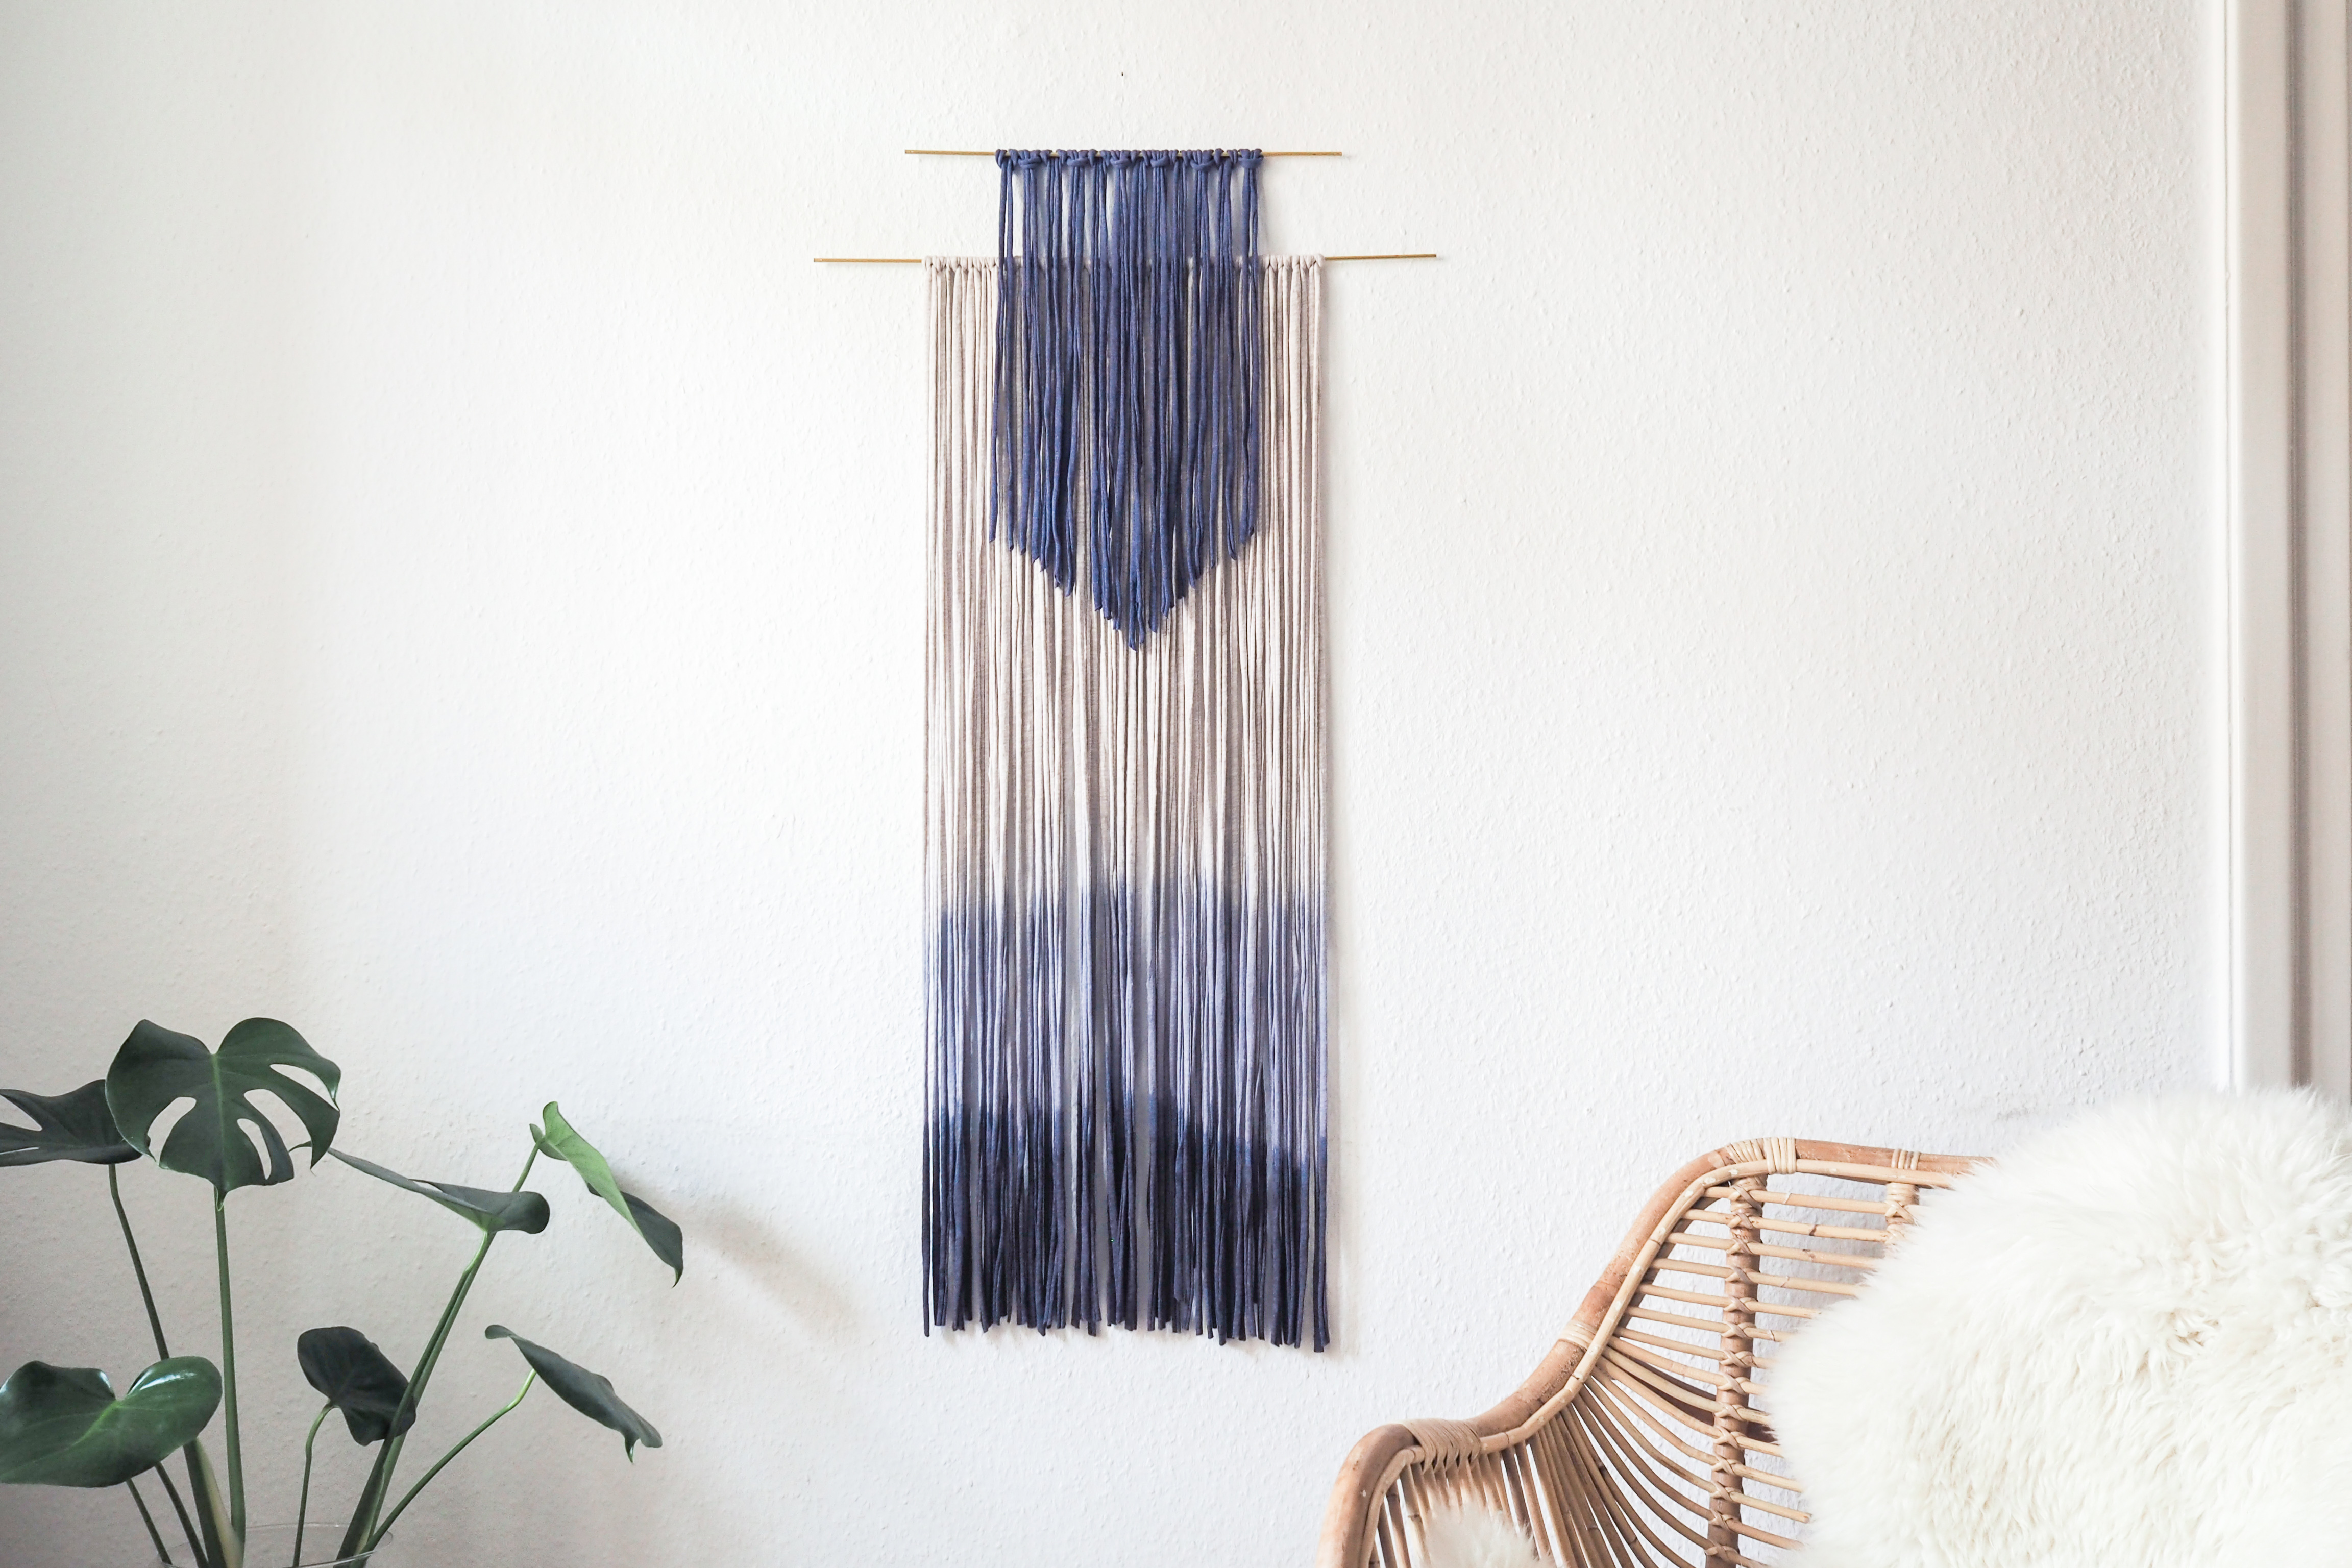 diy wanddeko selber machen dip dye wall hanging paulsvera. Black Bedroom Furniture Sets. Home Design Ideas